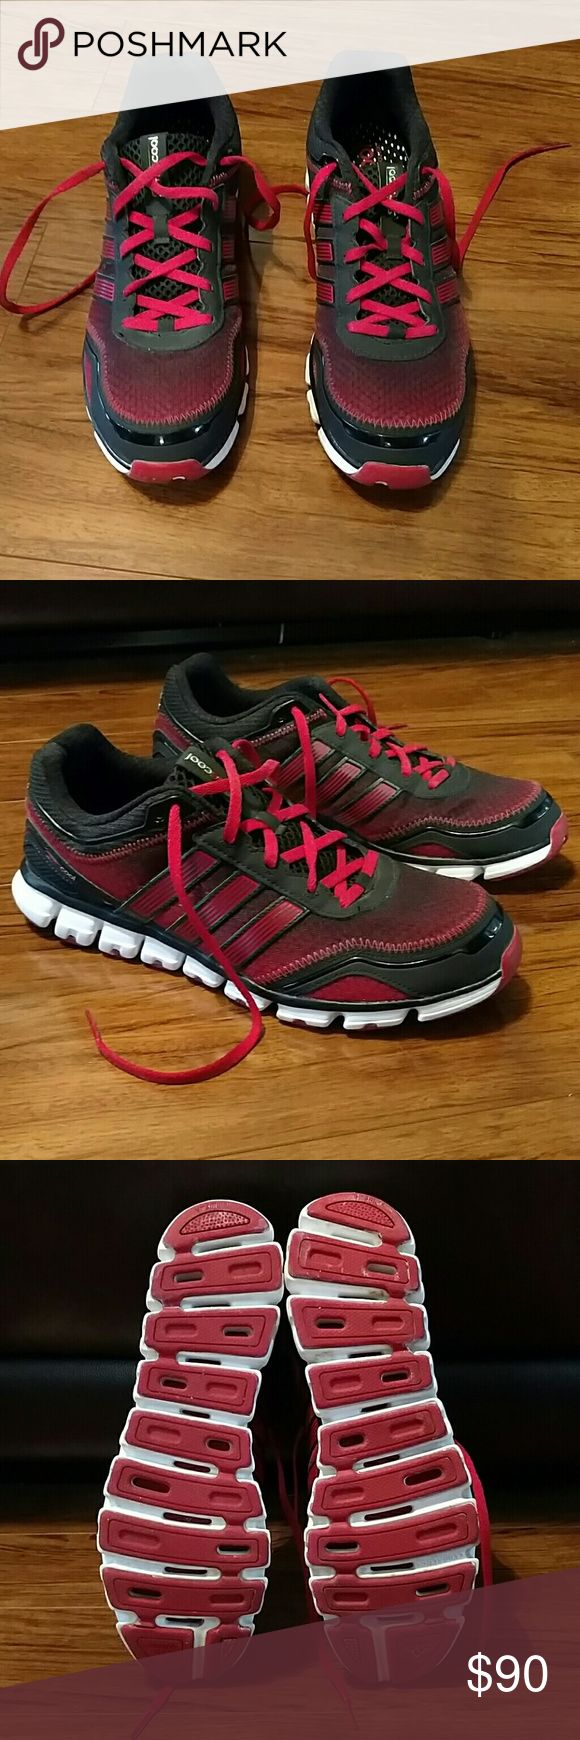 Adidas Climacool Shoes - Adidas Climacool Shoes - Excellent Condition / Worn Only Once - Size: 10 Adidas Shoes